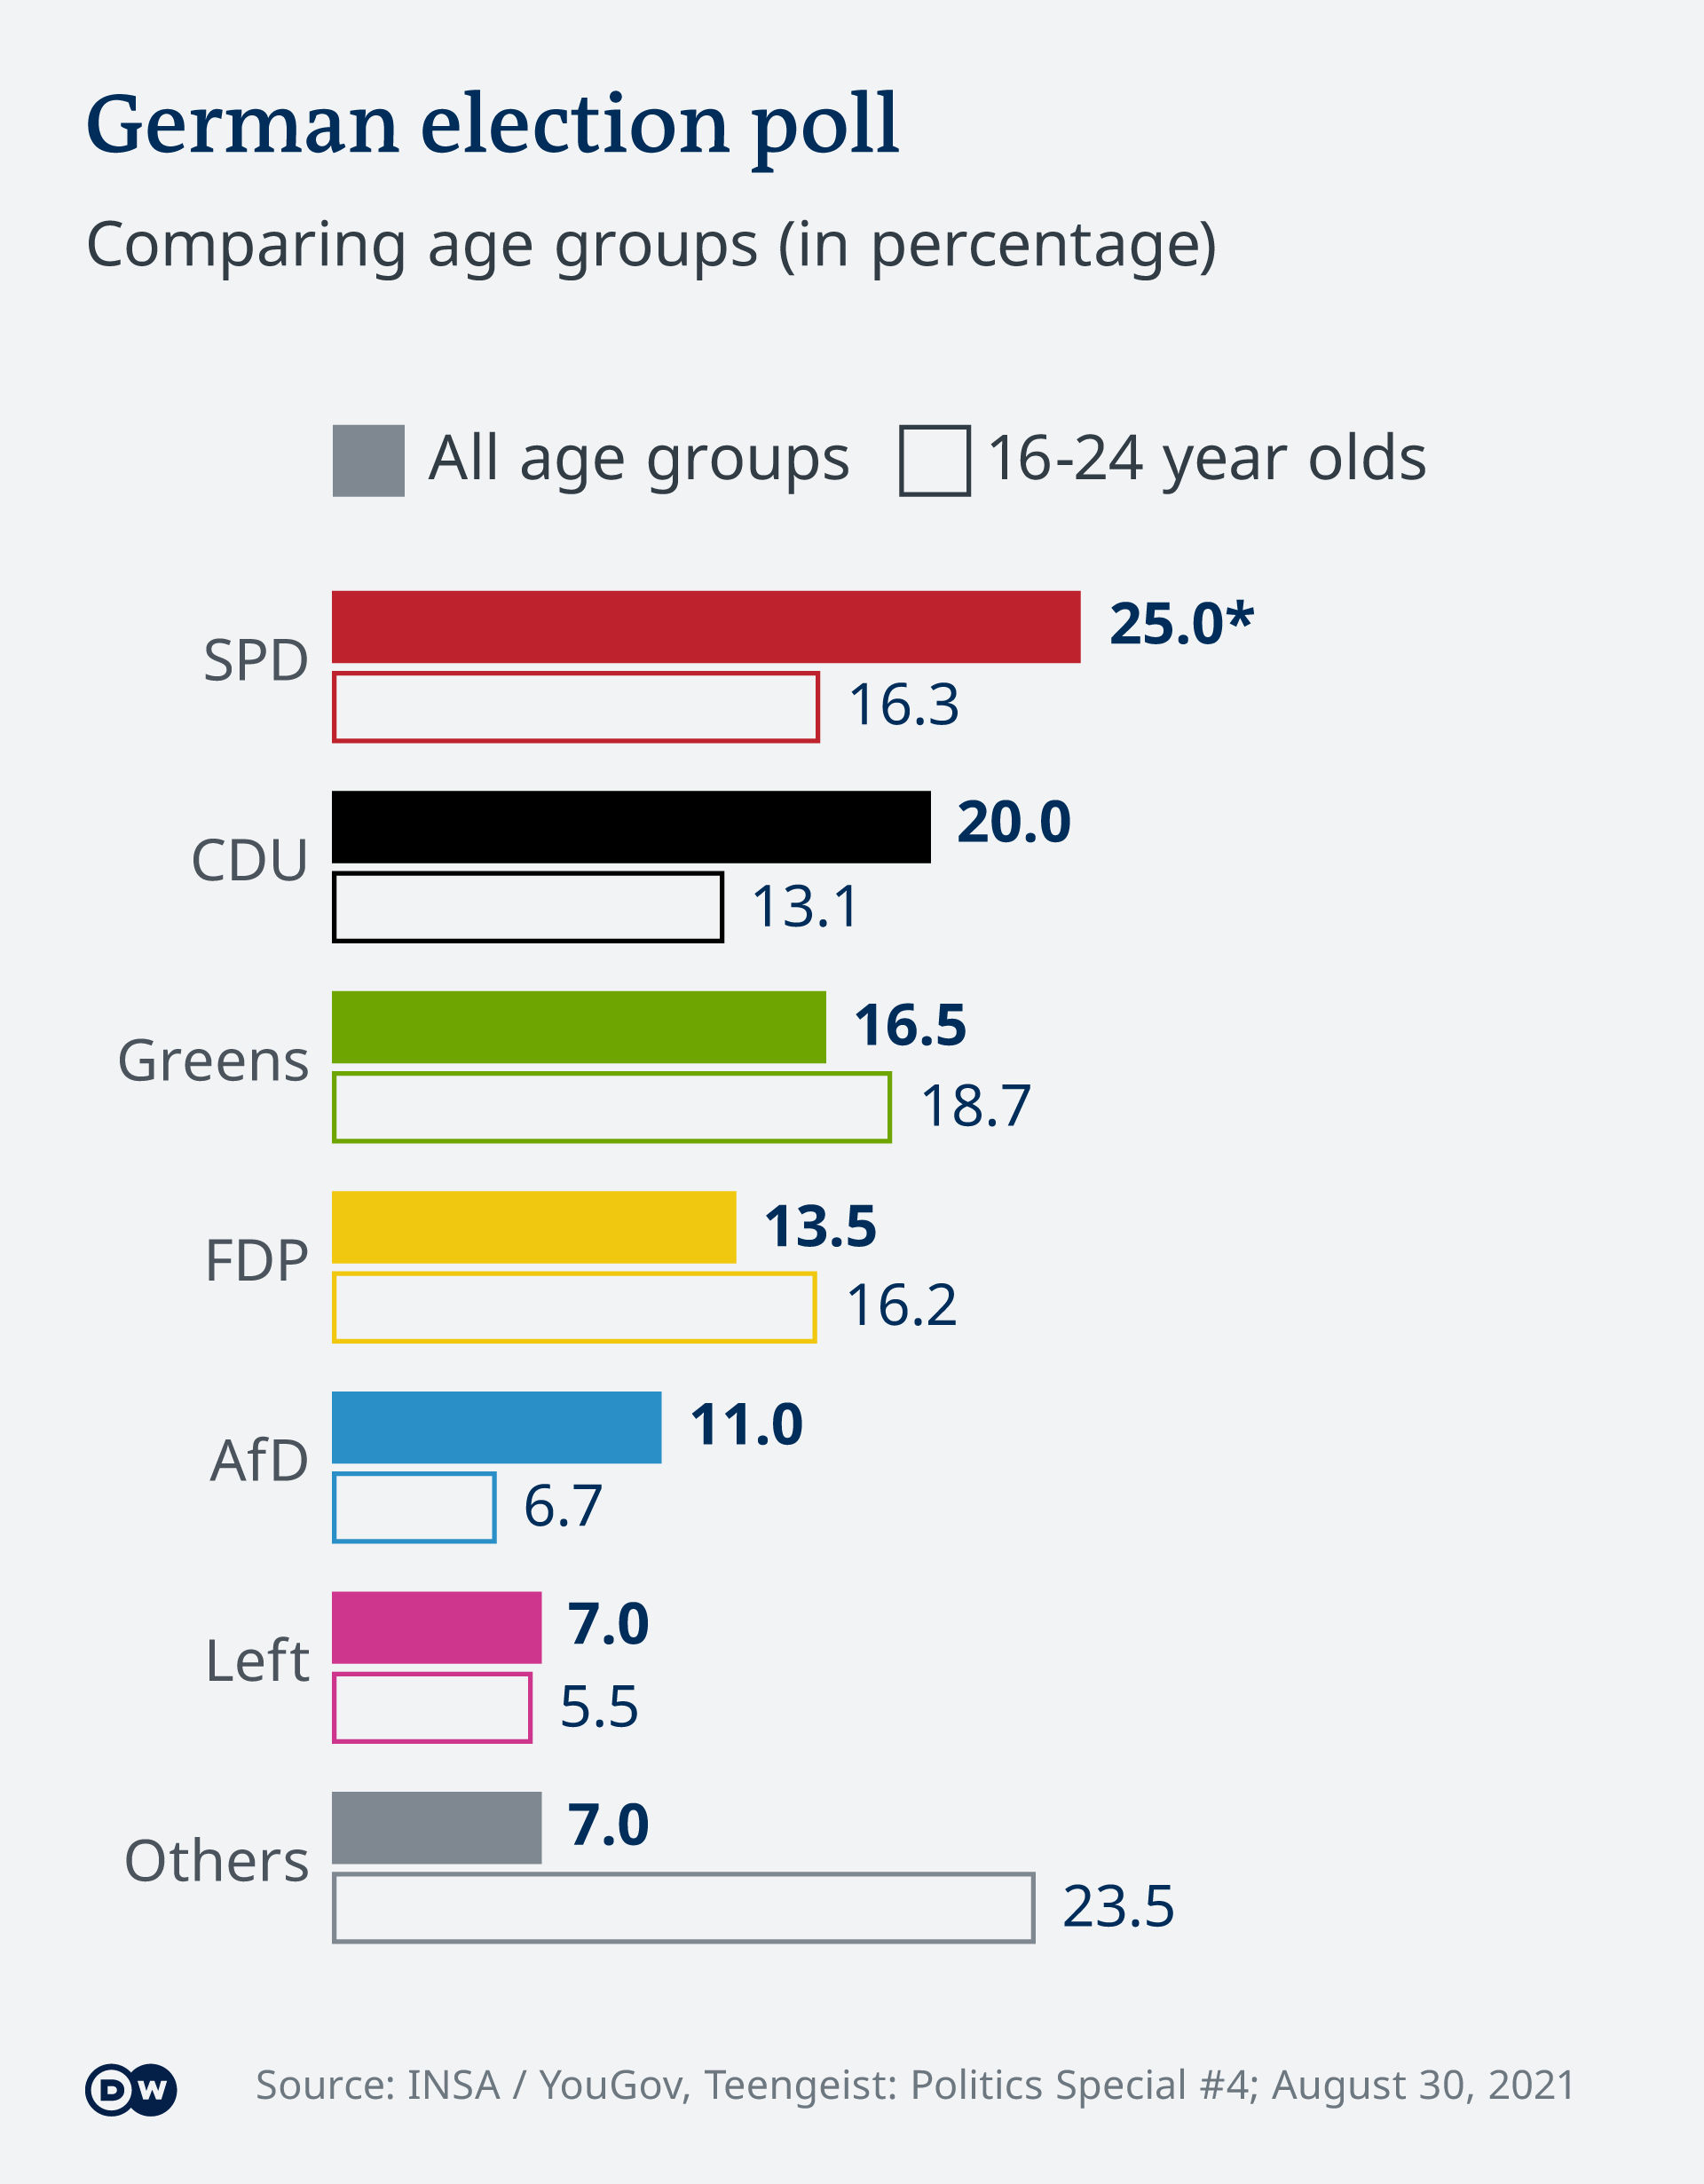 Infographic showing voting preferences of those aged 16-24 and all ages groups